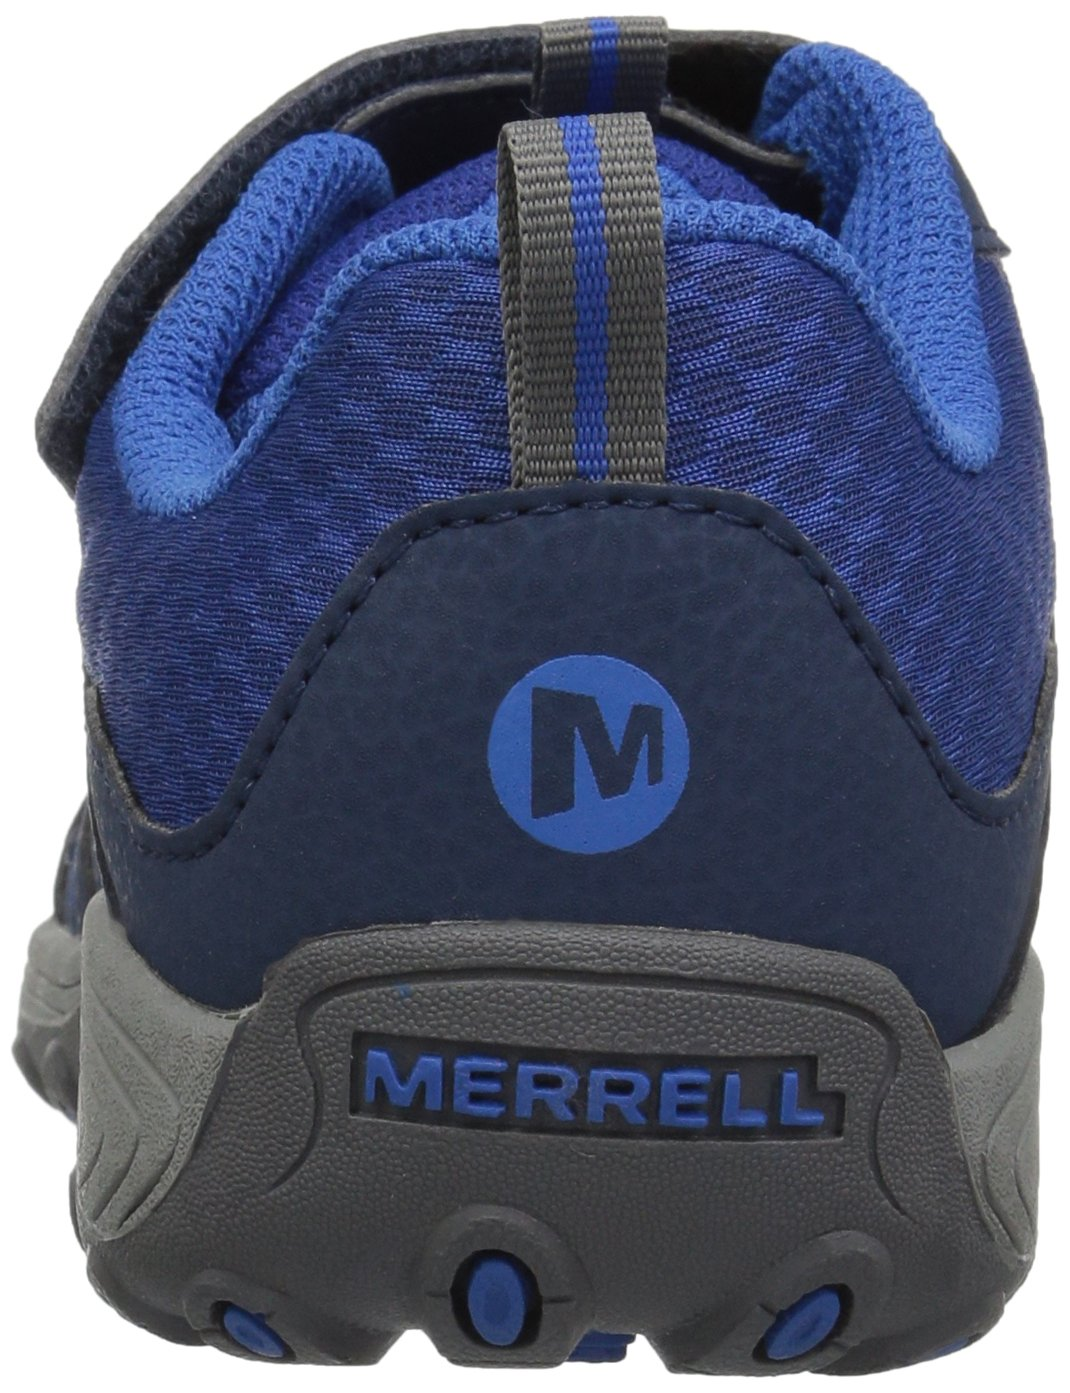 Merrell Trail Chaser Hiking Shoe, Navy, 4 M US Big Kid by Merrell (Image #2)